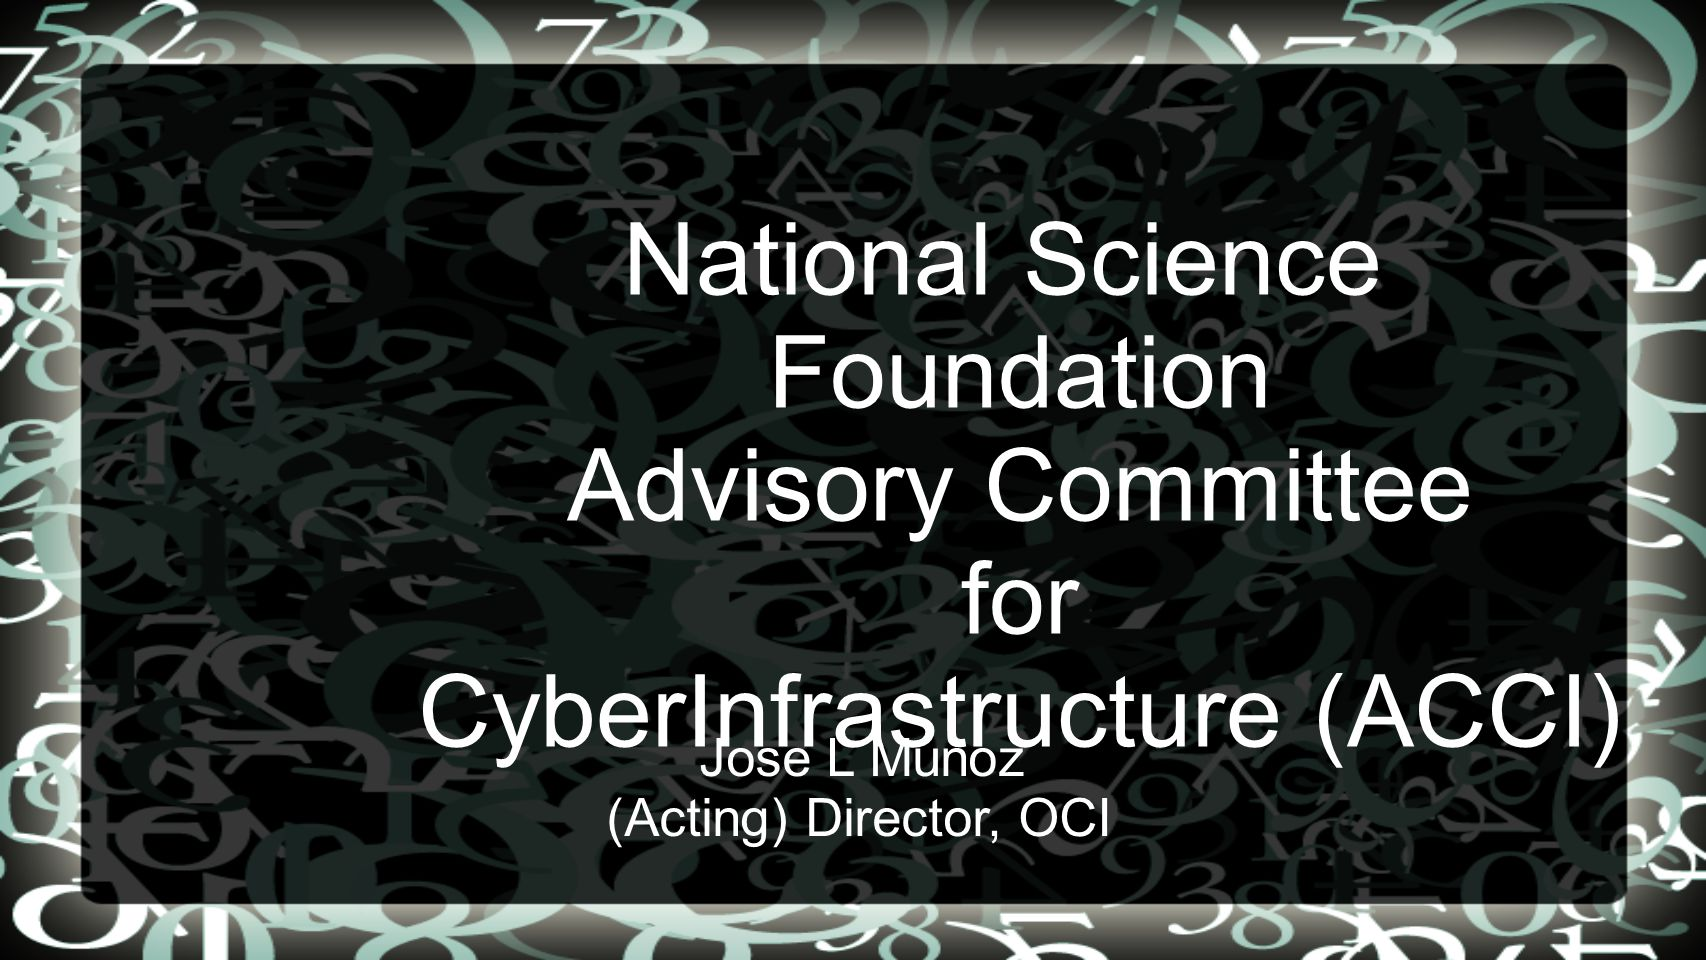 National Science Foundation Advisory Committee for CyberInfrastructure (ACCI) Jose L Munoz (Acting) Director, OCI